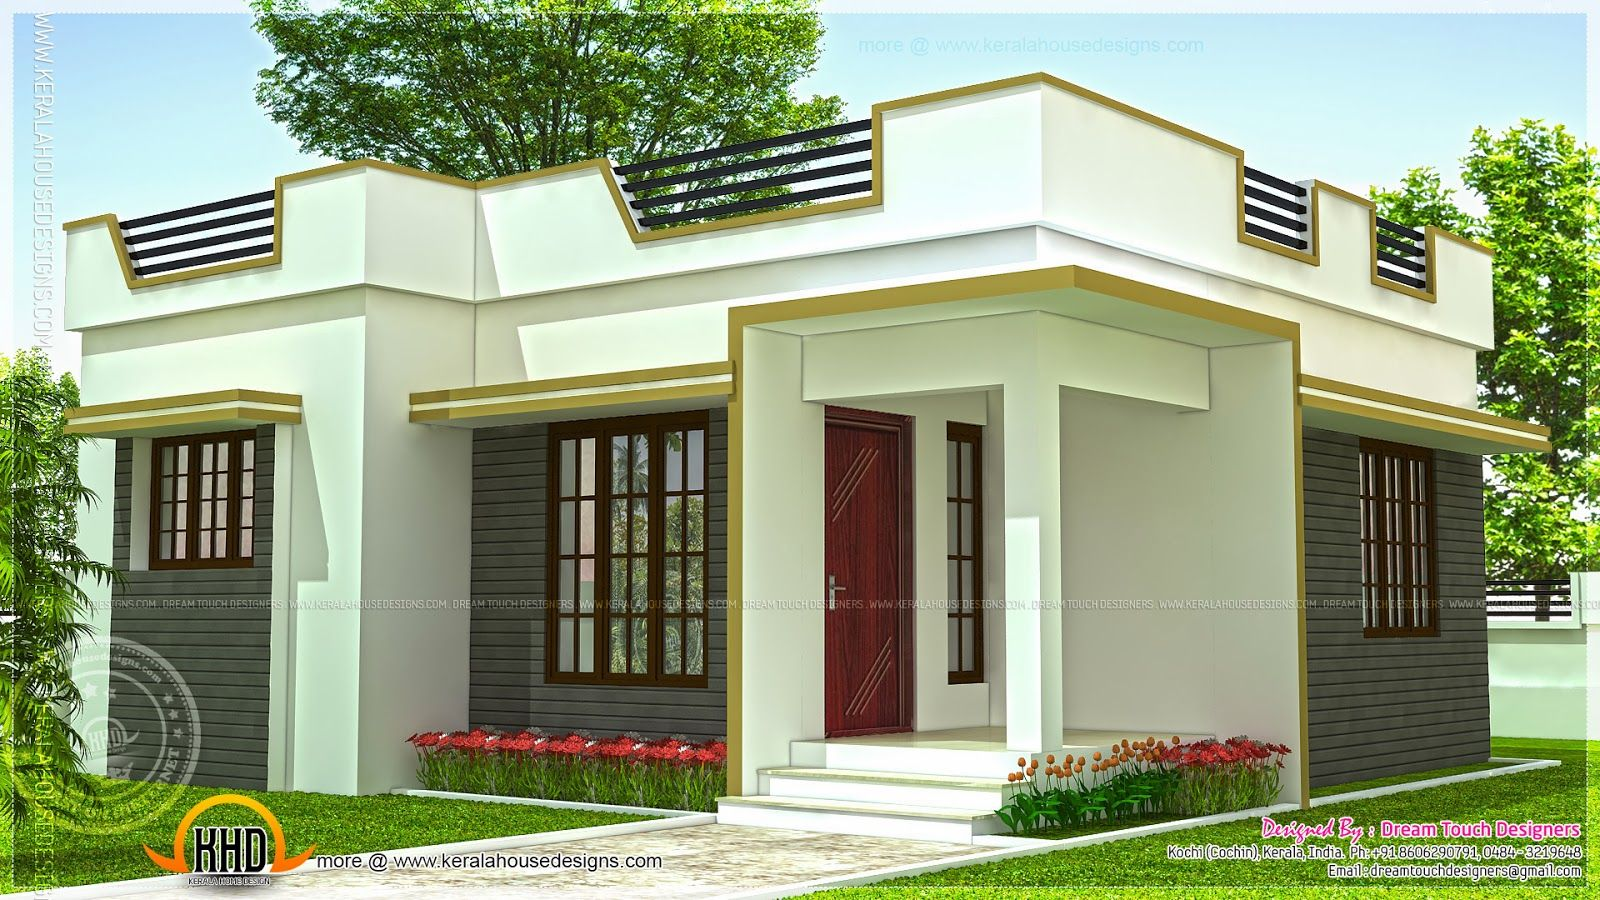 Lately 21 Small House Design Kerala Small House: best small house designs in india